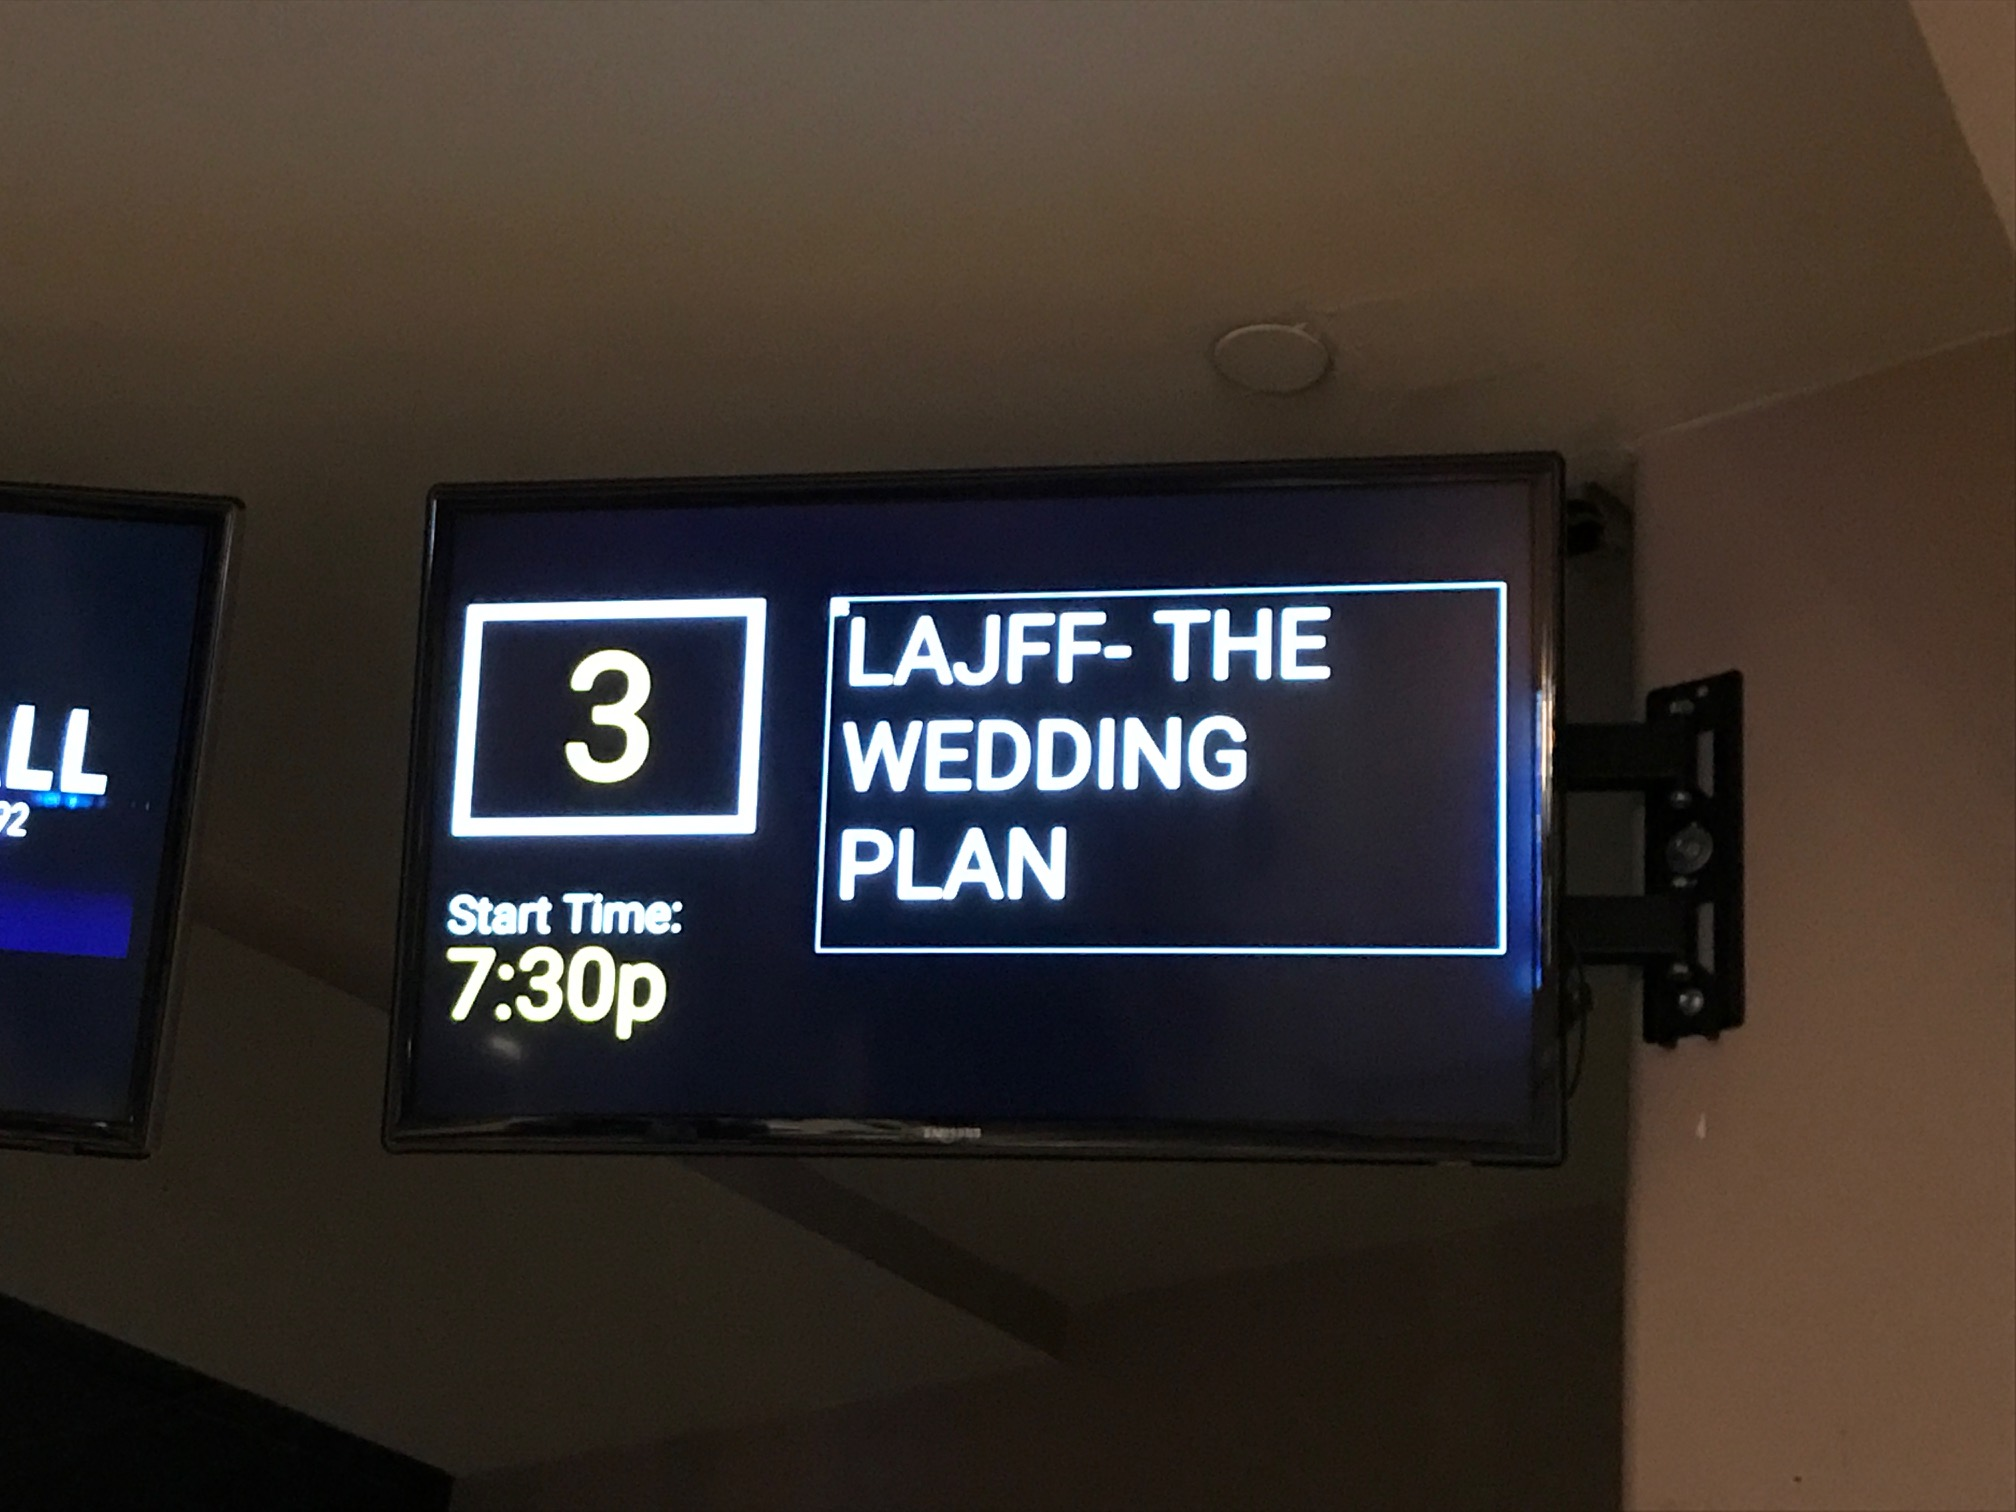 Wedding plan IMG_2451